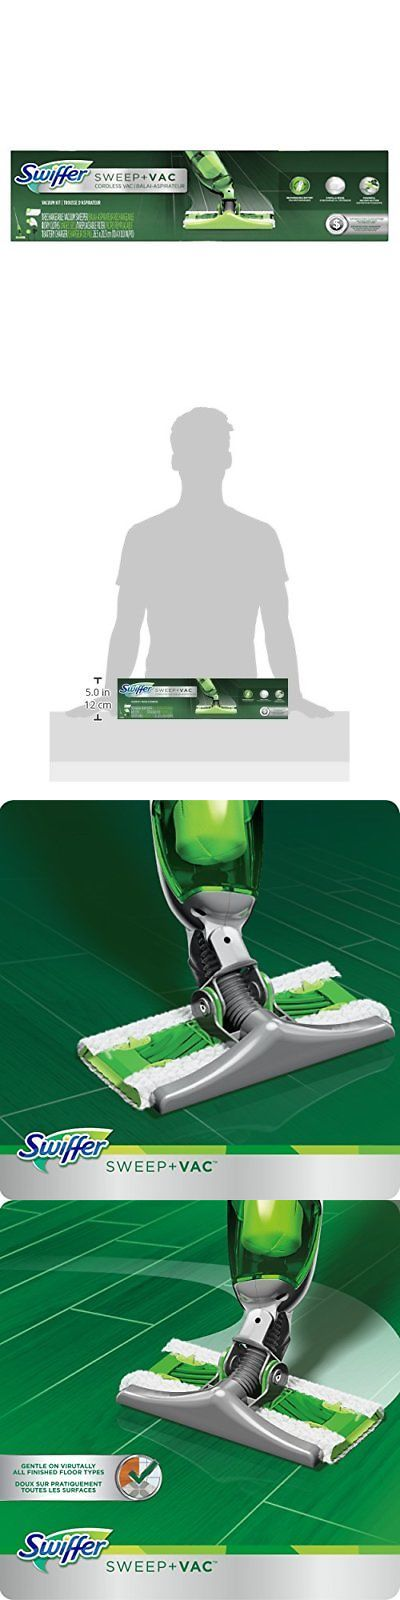 Mops and Brooms 20607: Swiffer Sweep And Vac, Vacuum Cleaner, Floor Sweeper Starter Kit -> BUY IT NOW ONLY: $56.2 on eBay!